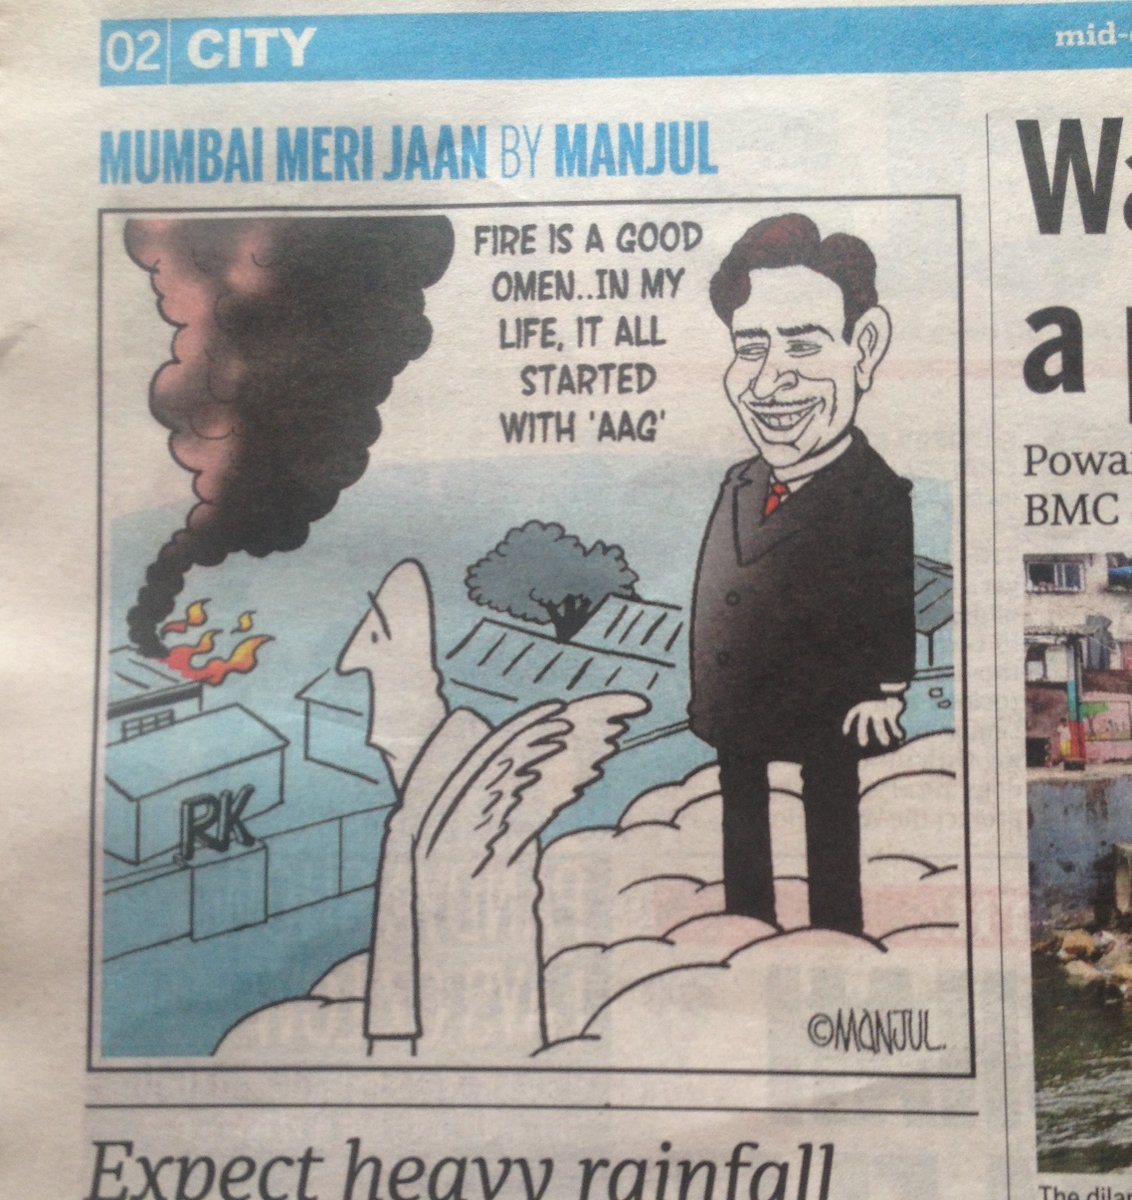 Cartoon published in a leading daily